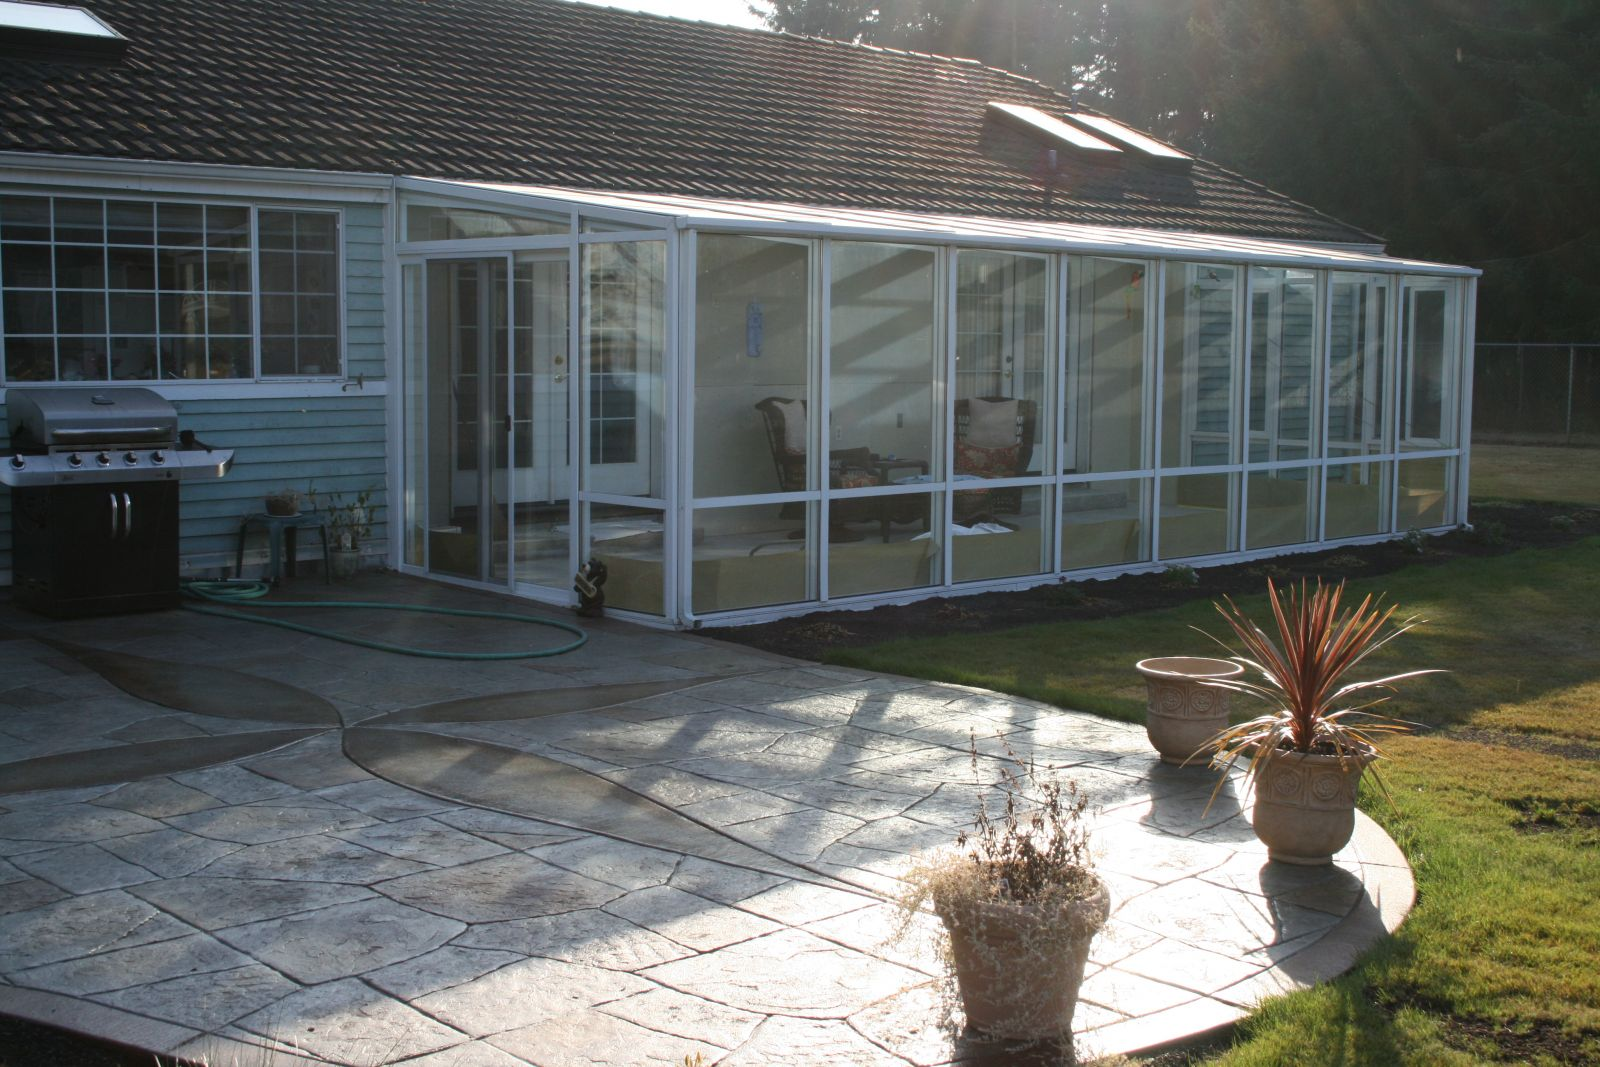 Sunroom Installation Project with Homeowner Participation